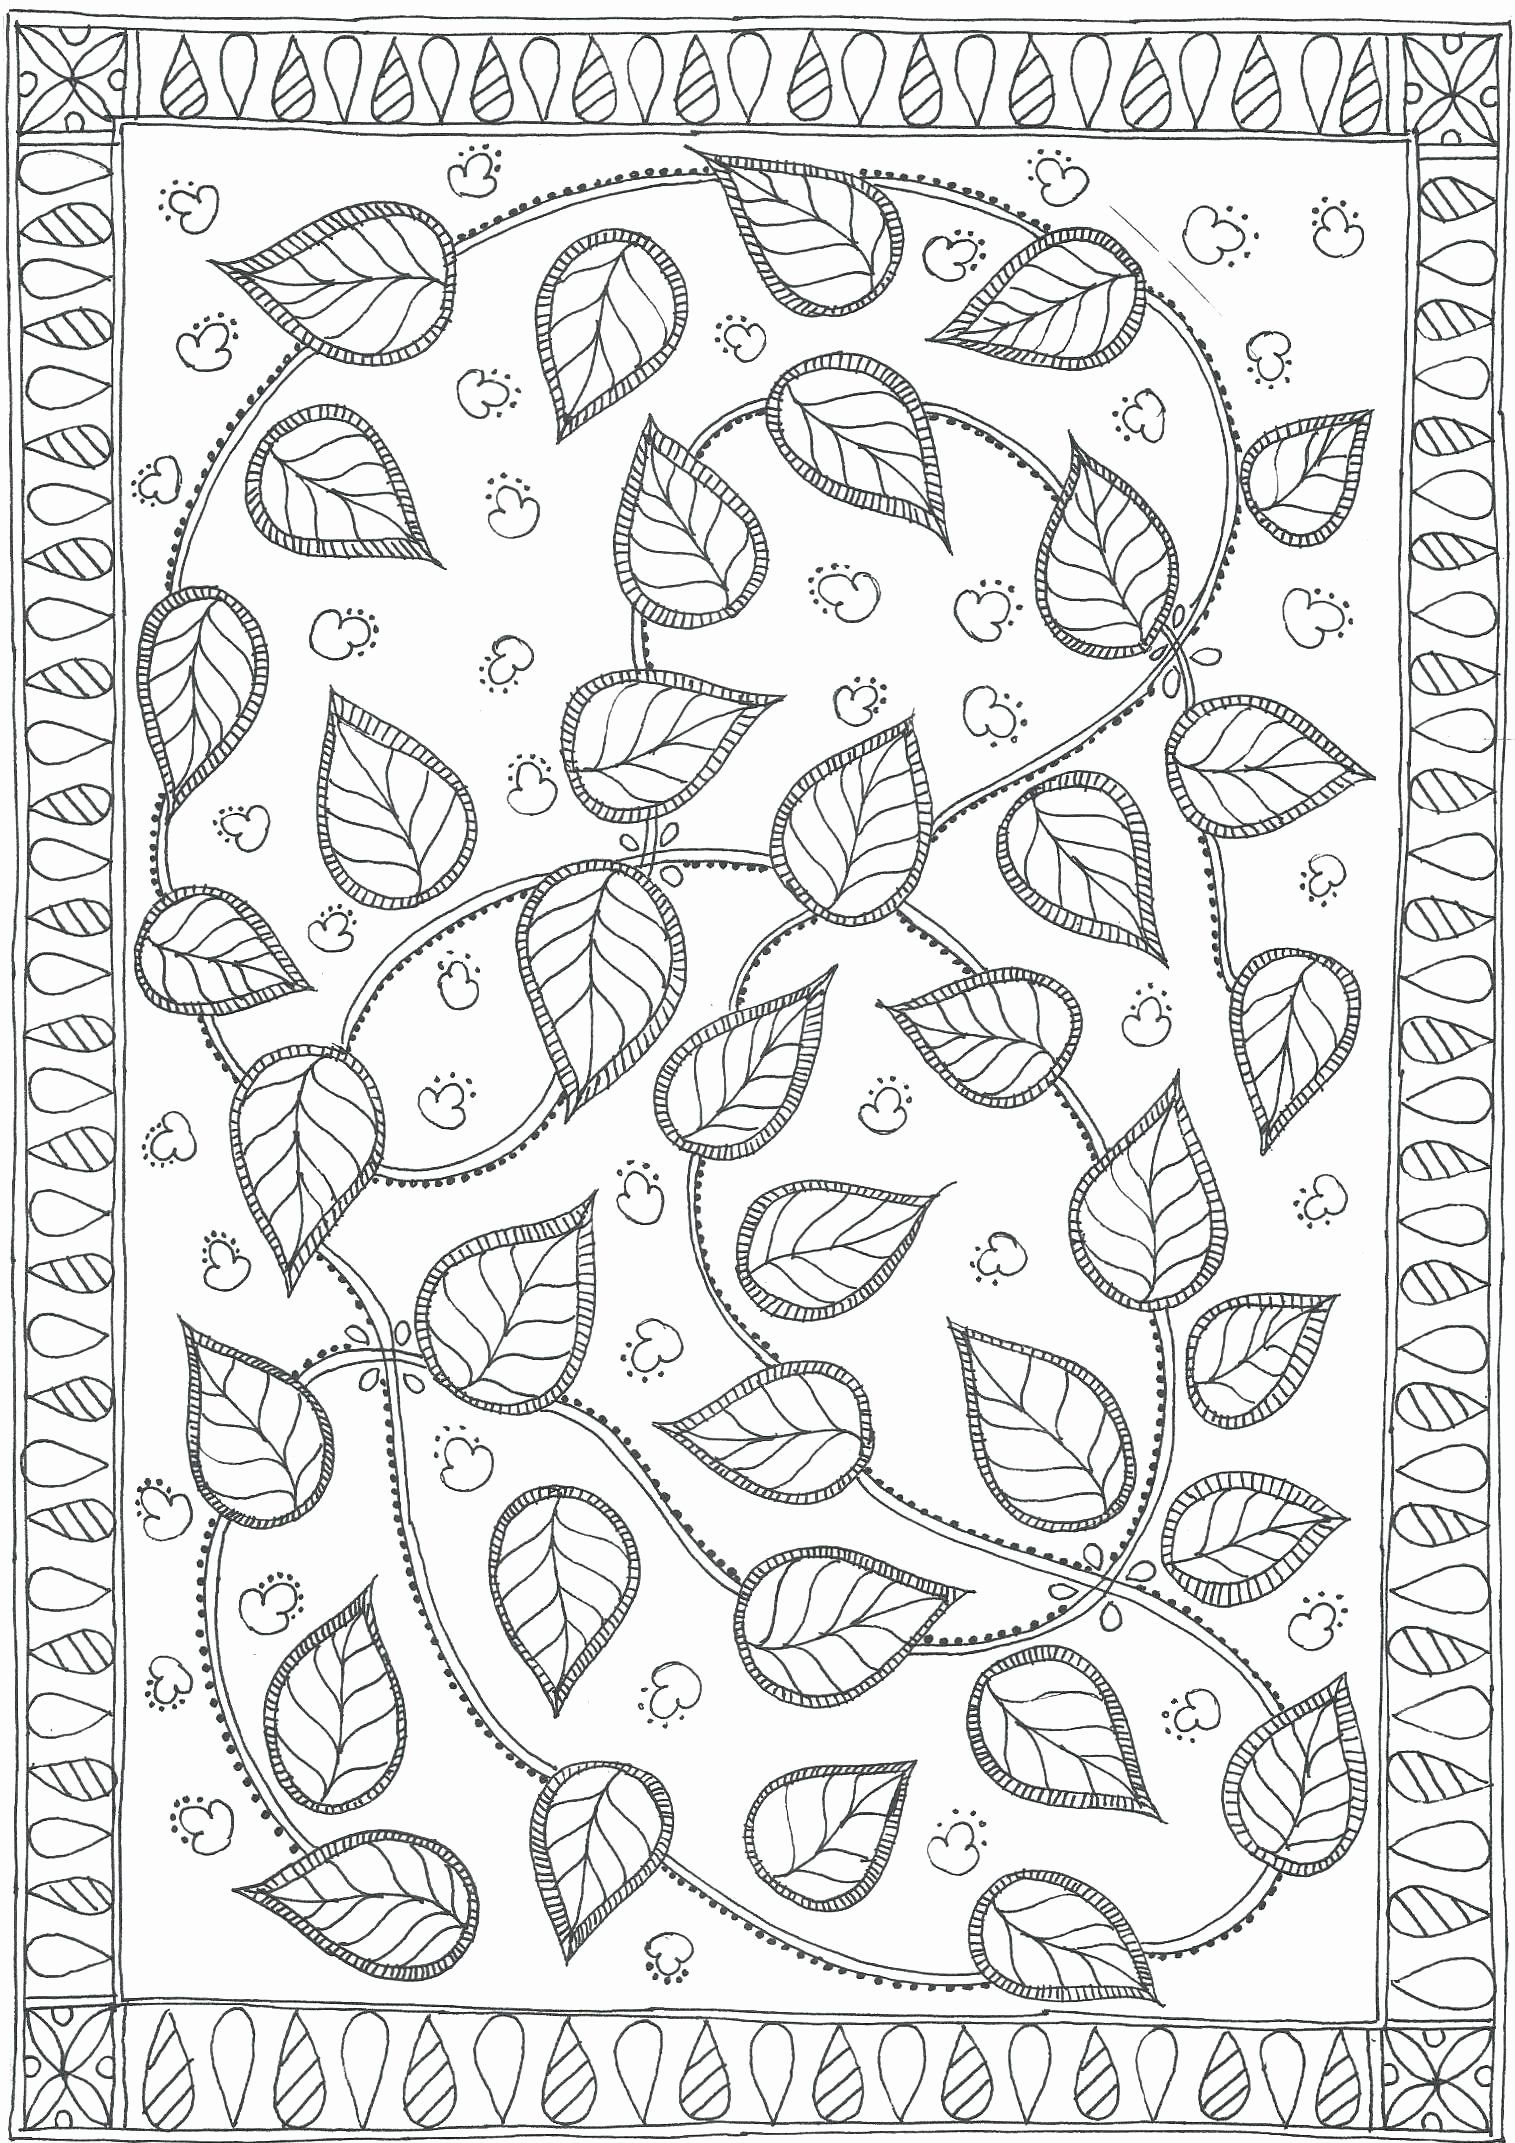 Star Spangled Banner Coloring Page Awesome Indian National Symbols